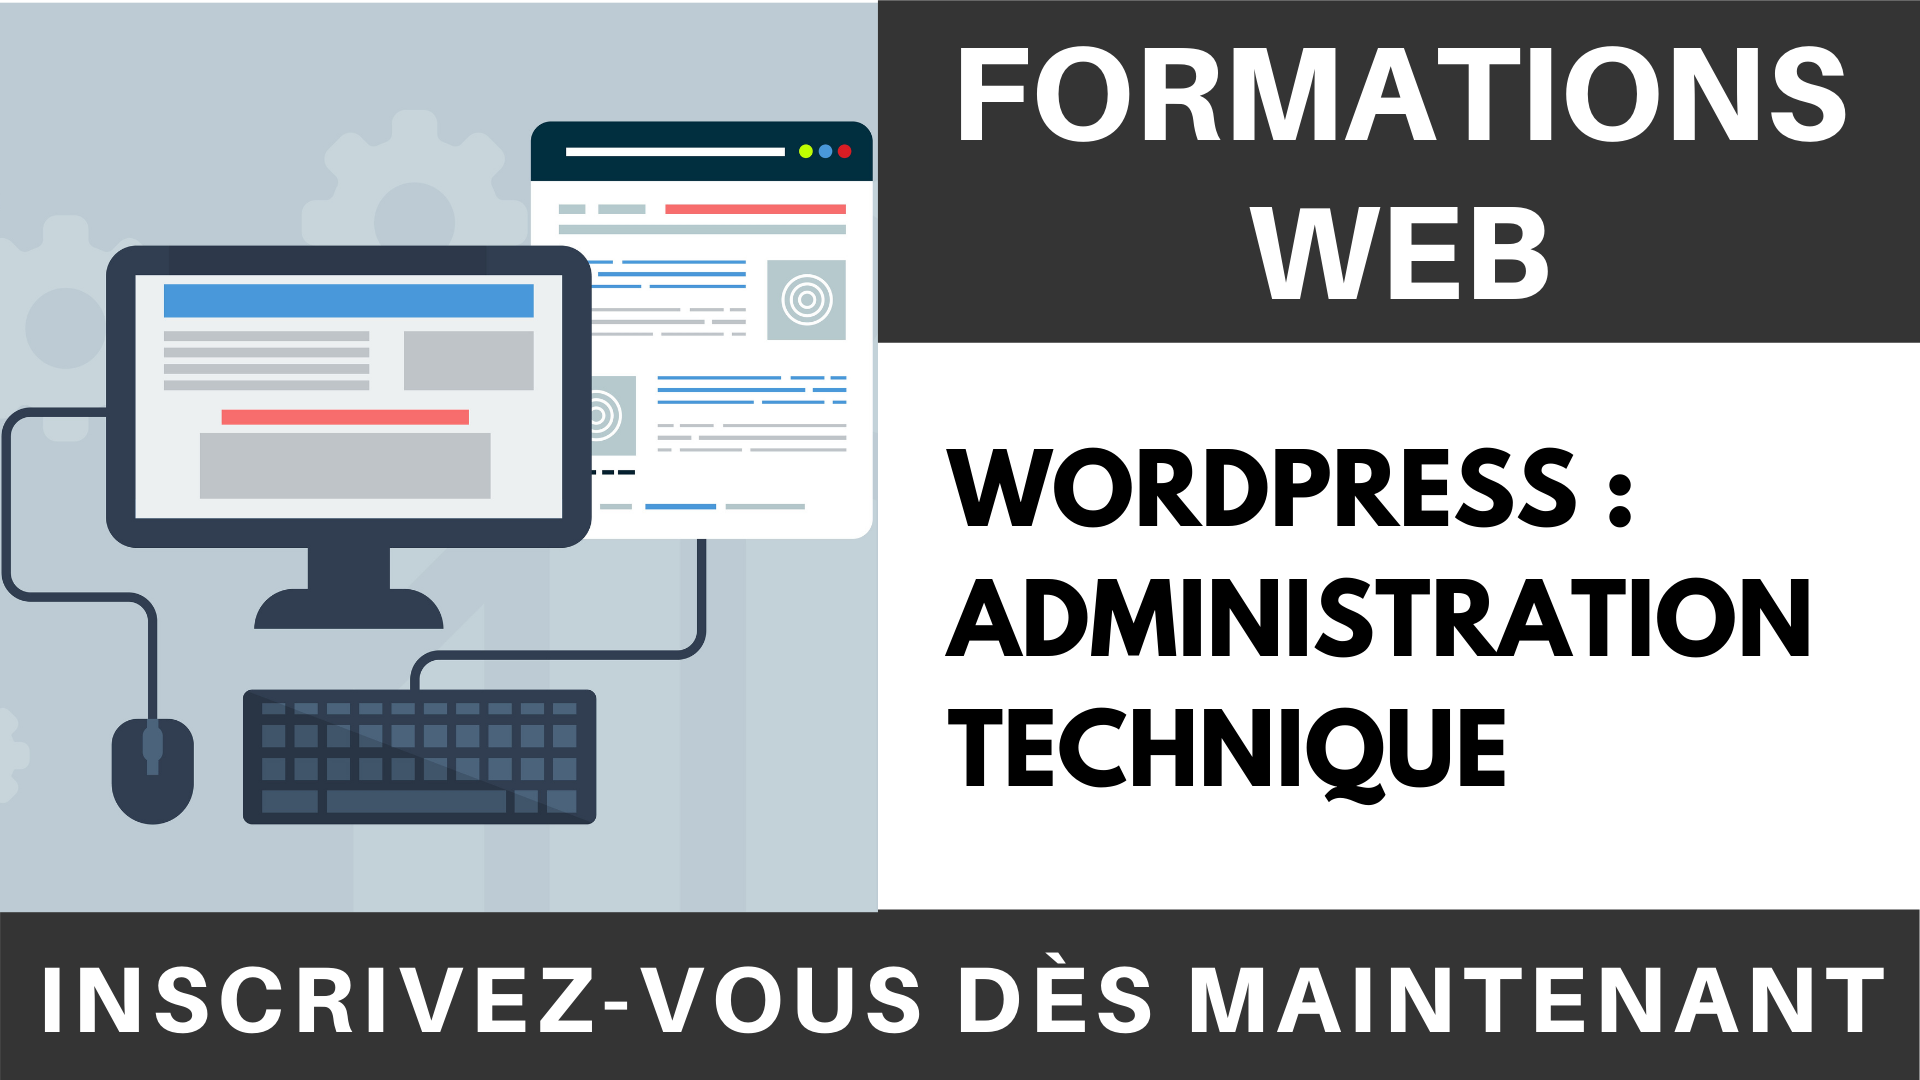 Formation web - Wordpress _ Administration technique (1)